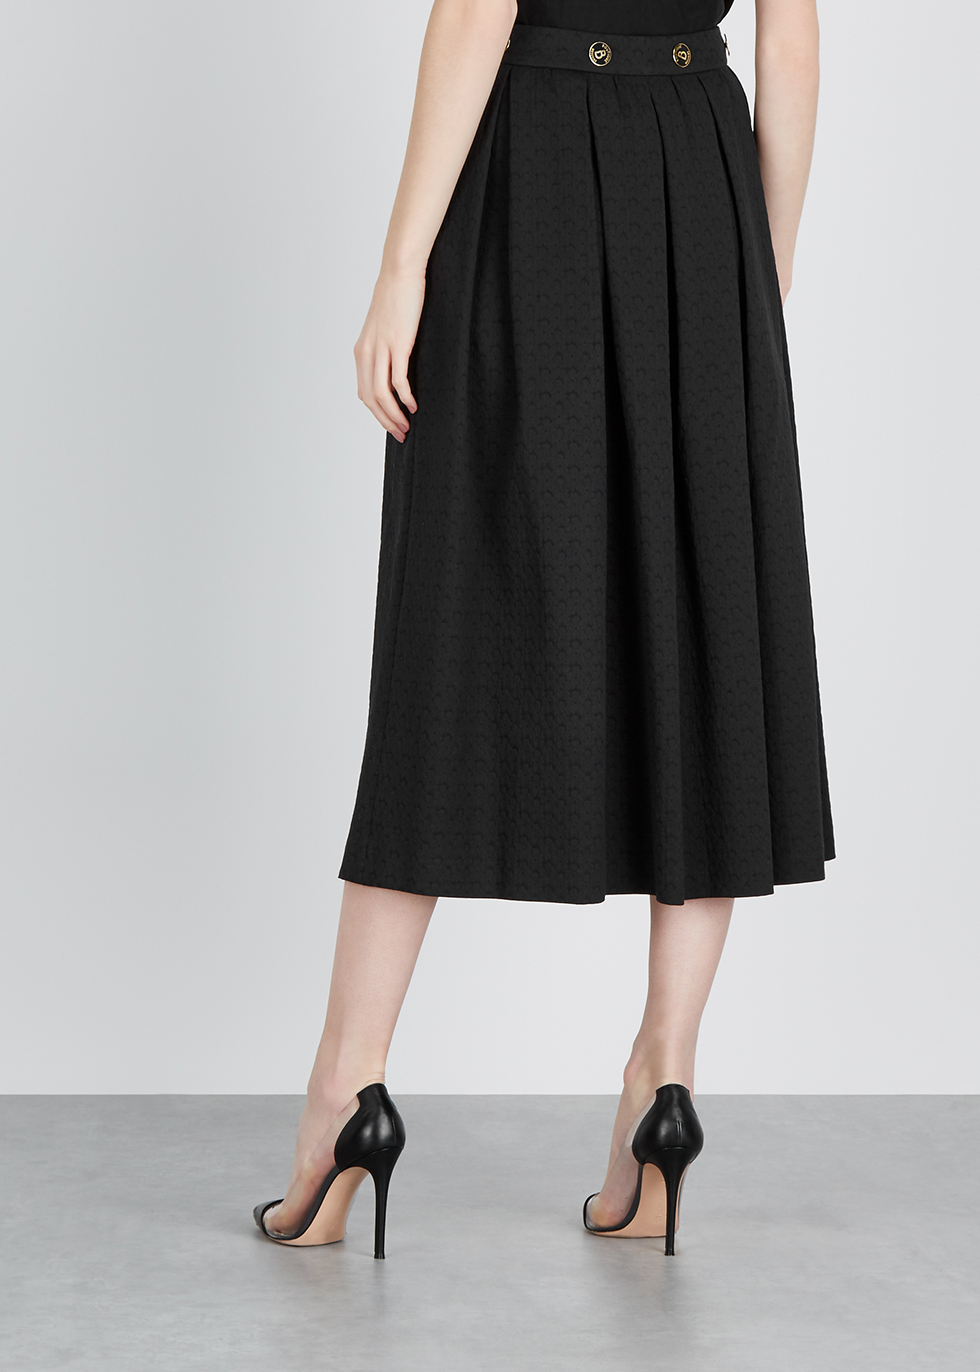 Black pleated jacquard skirt - Boutique Moschino